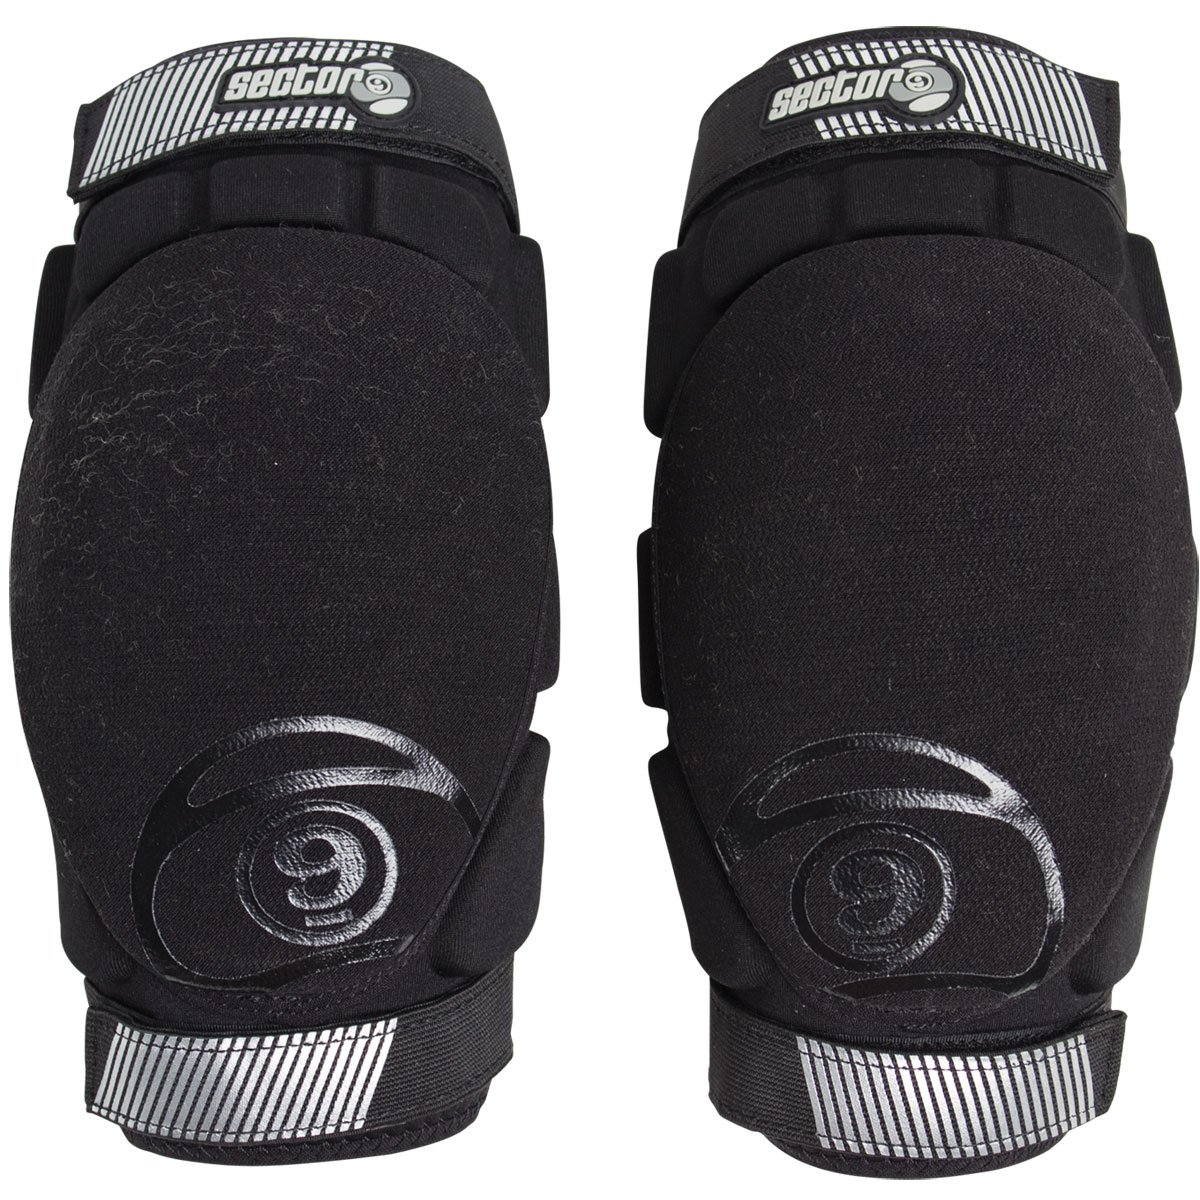 Sector 9 Precision Elbow Pad Protective Gear, Black, Large/X-Large